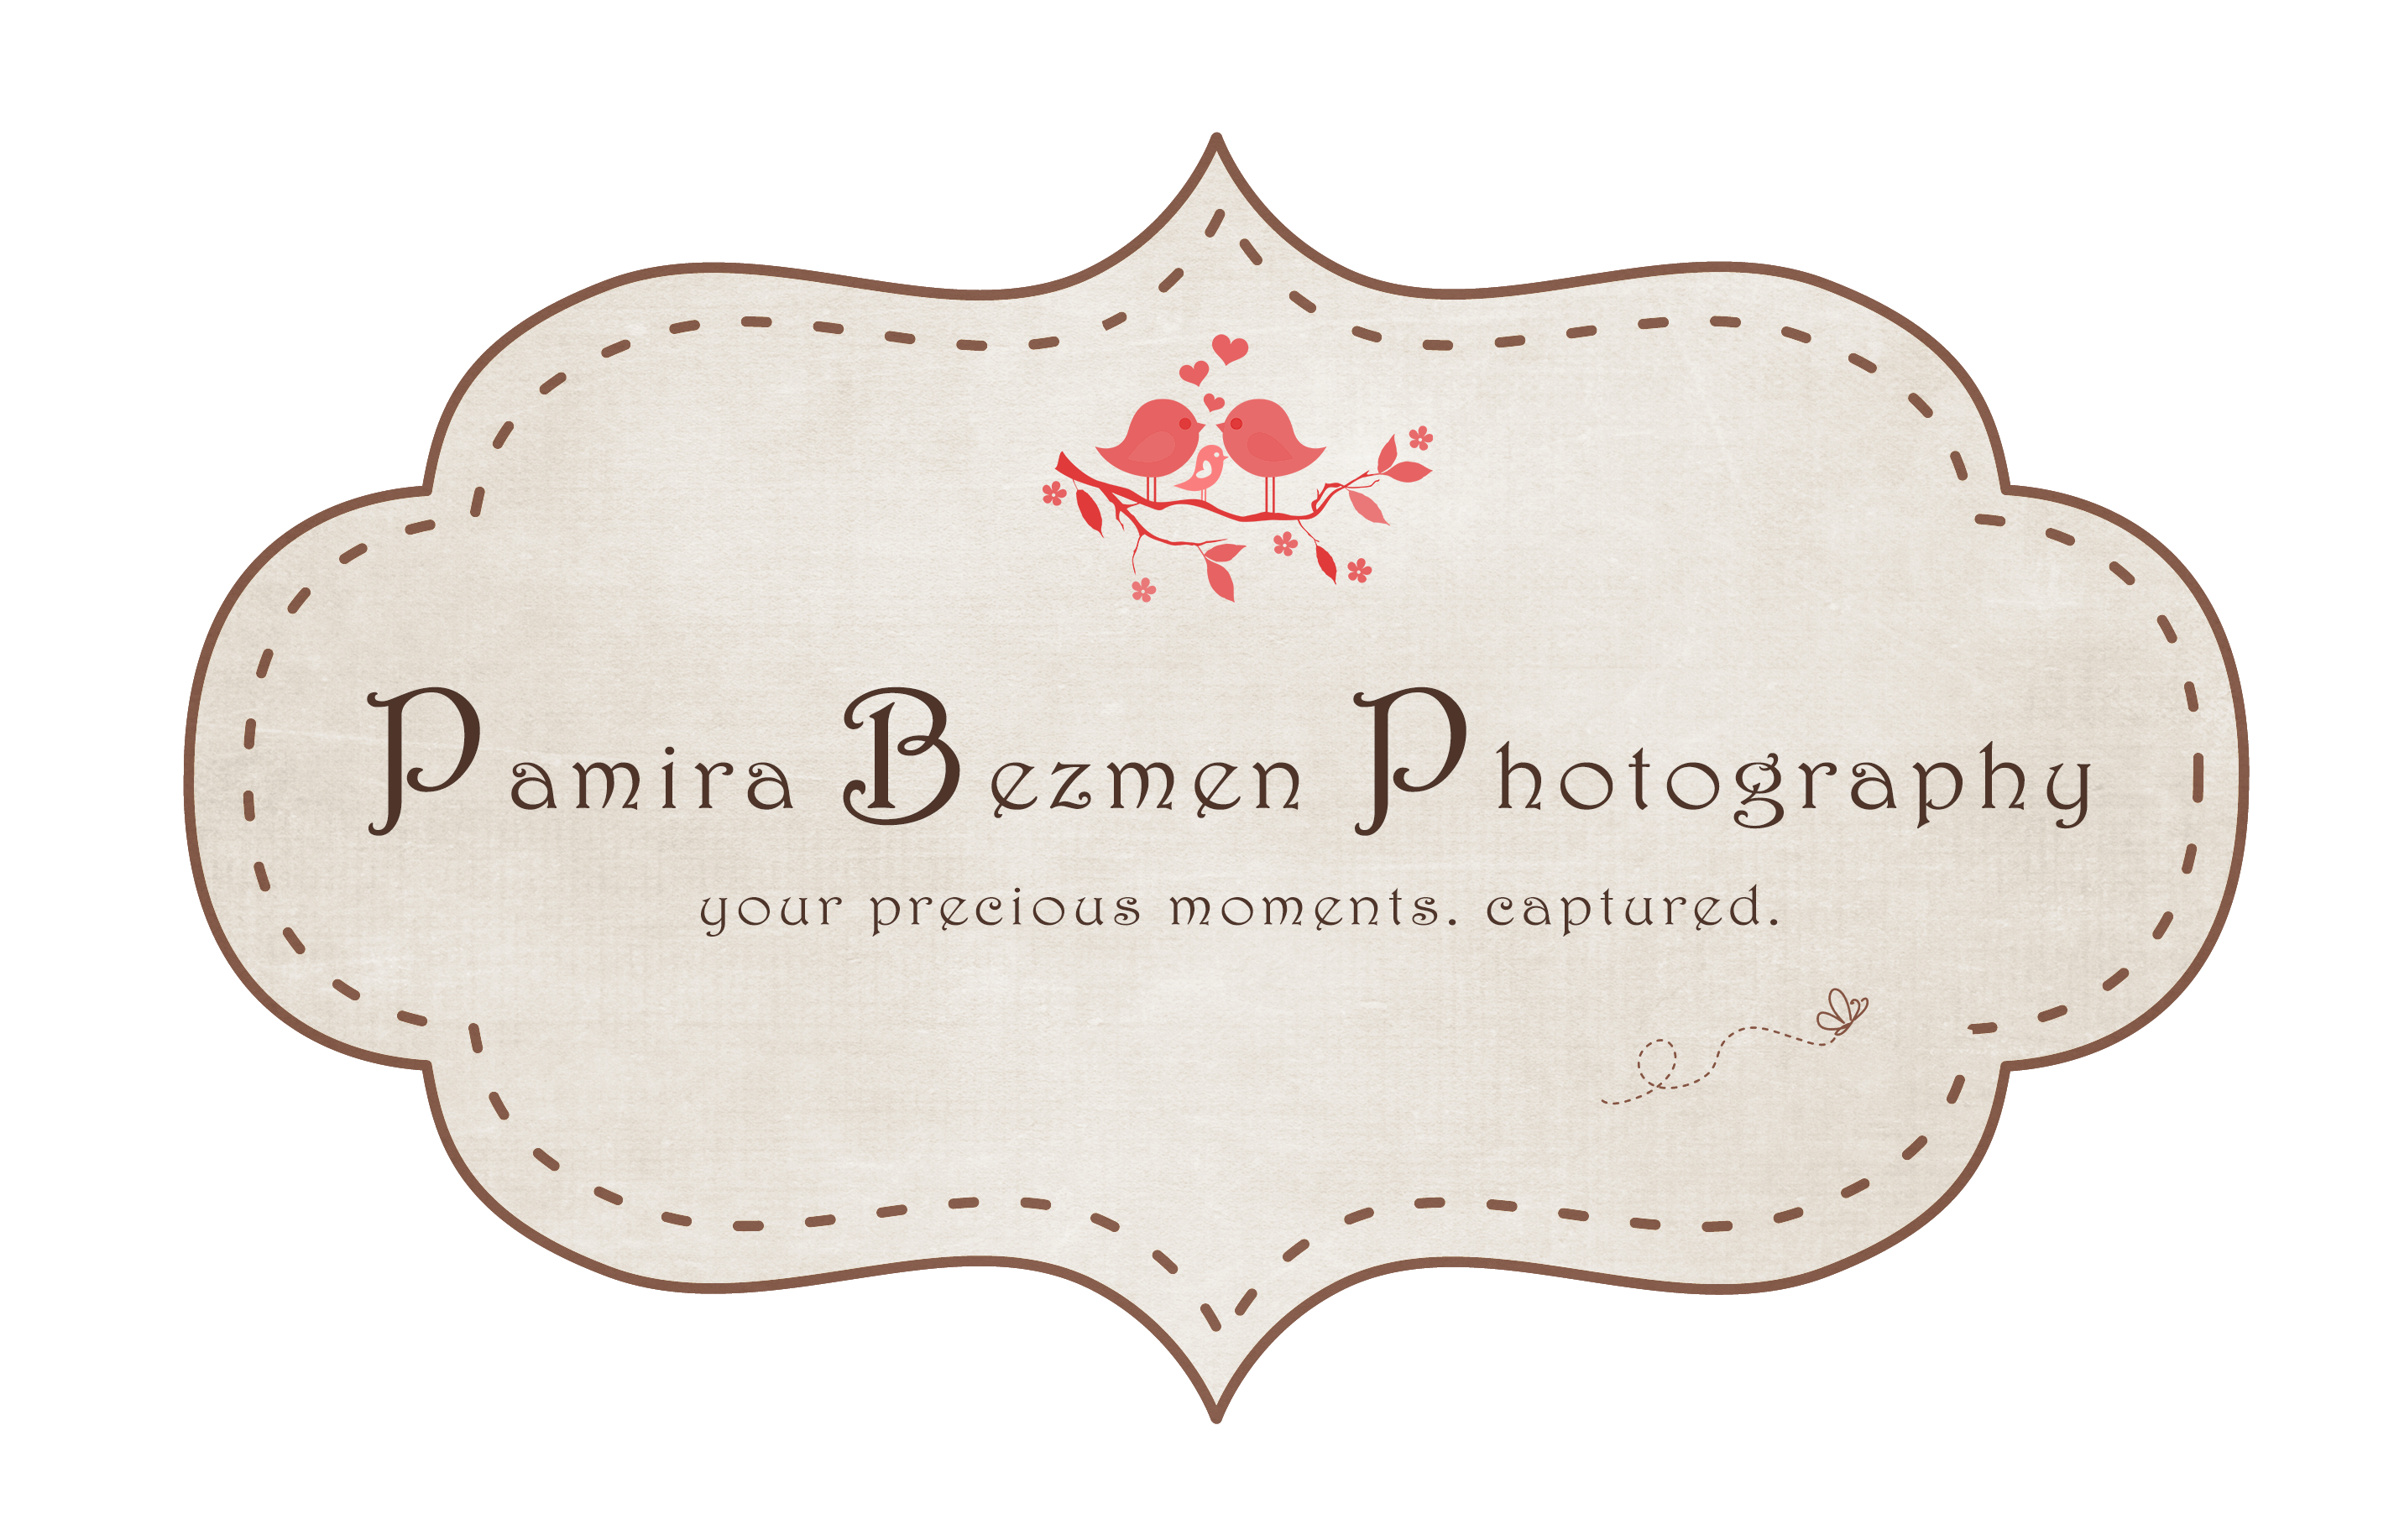 Pamira Bezmen Photography